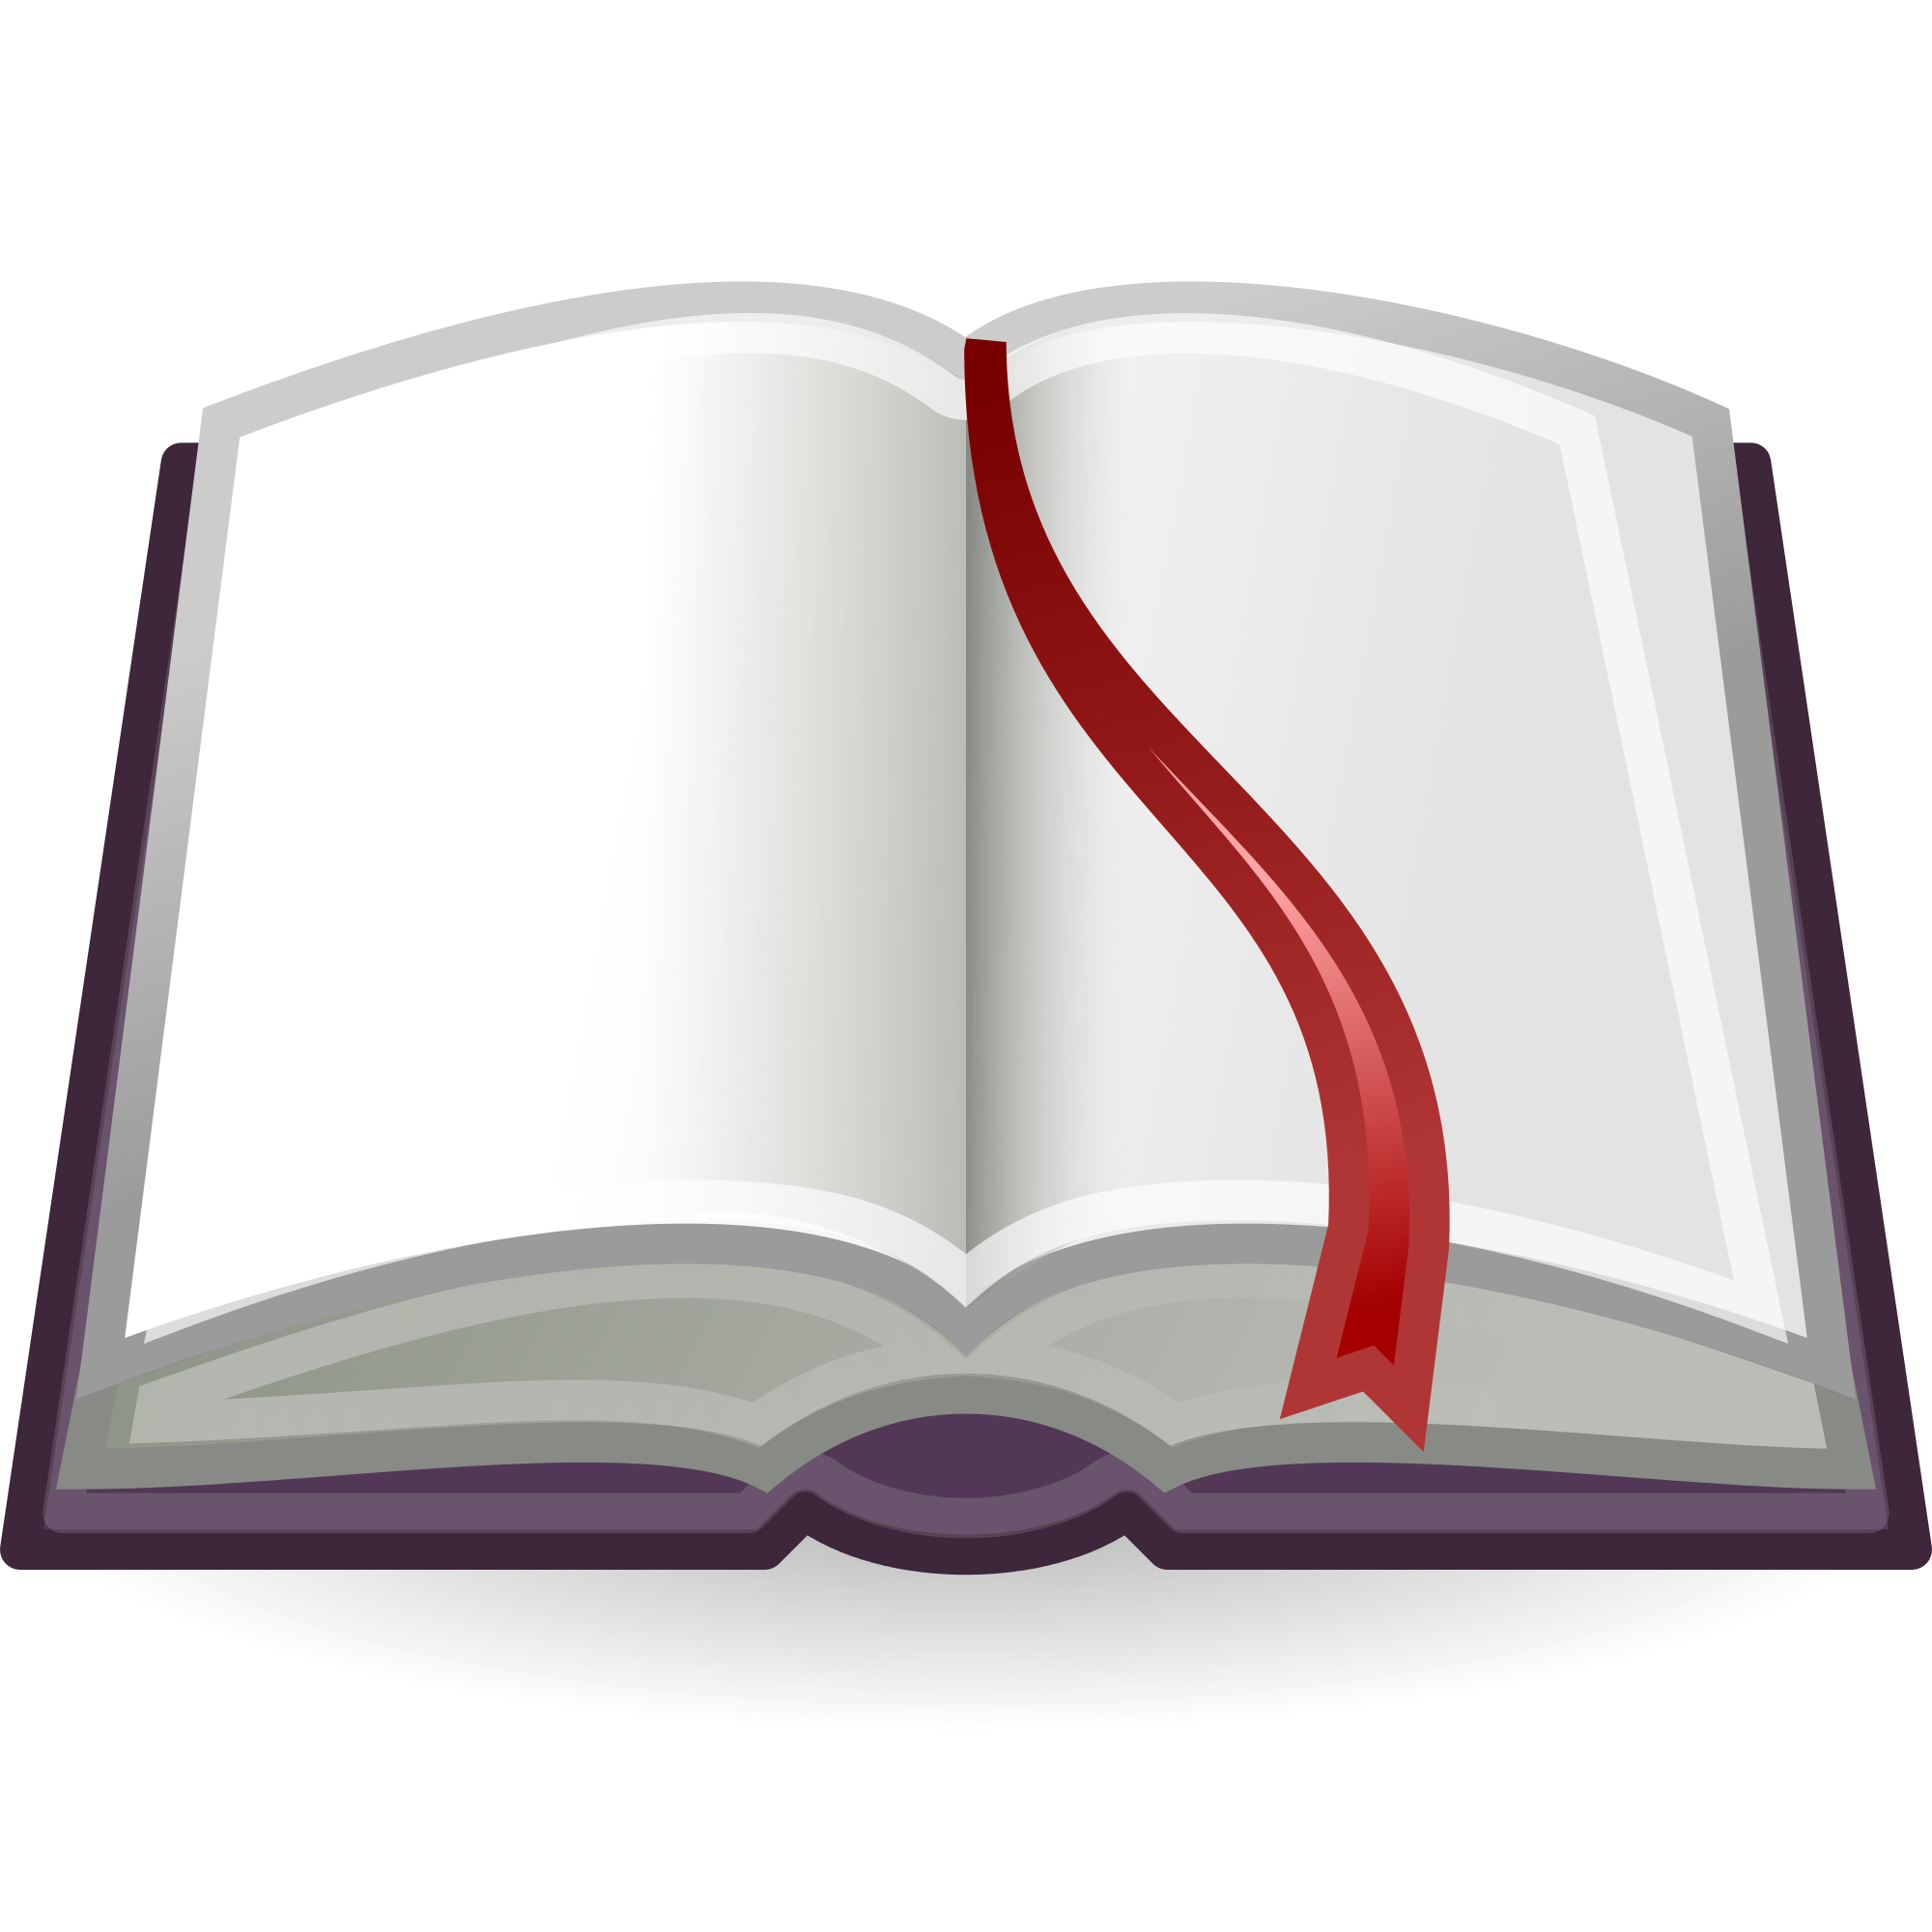 Dictionary clipart data dictionary. File accessories svg wikimedia